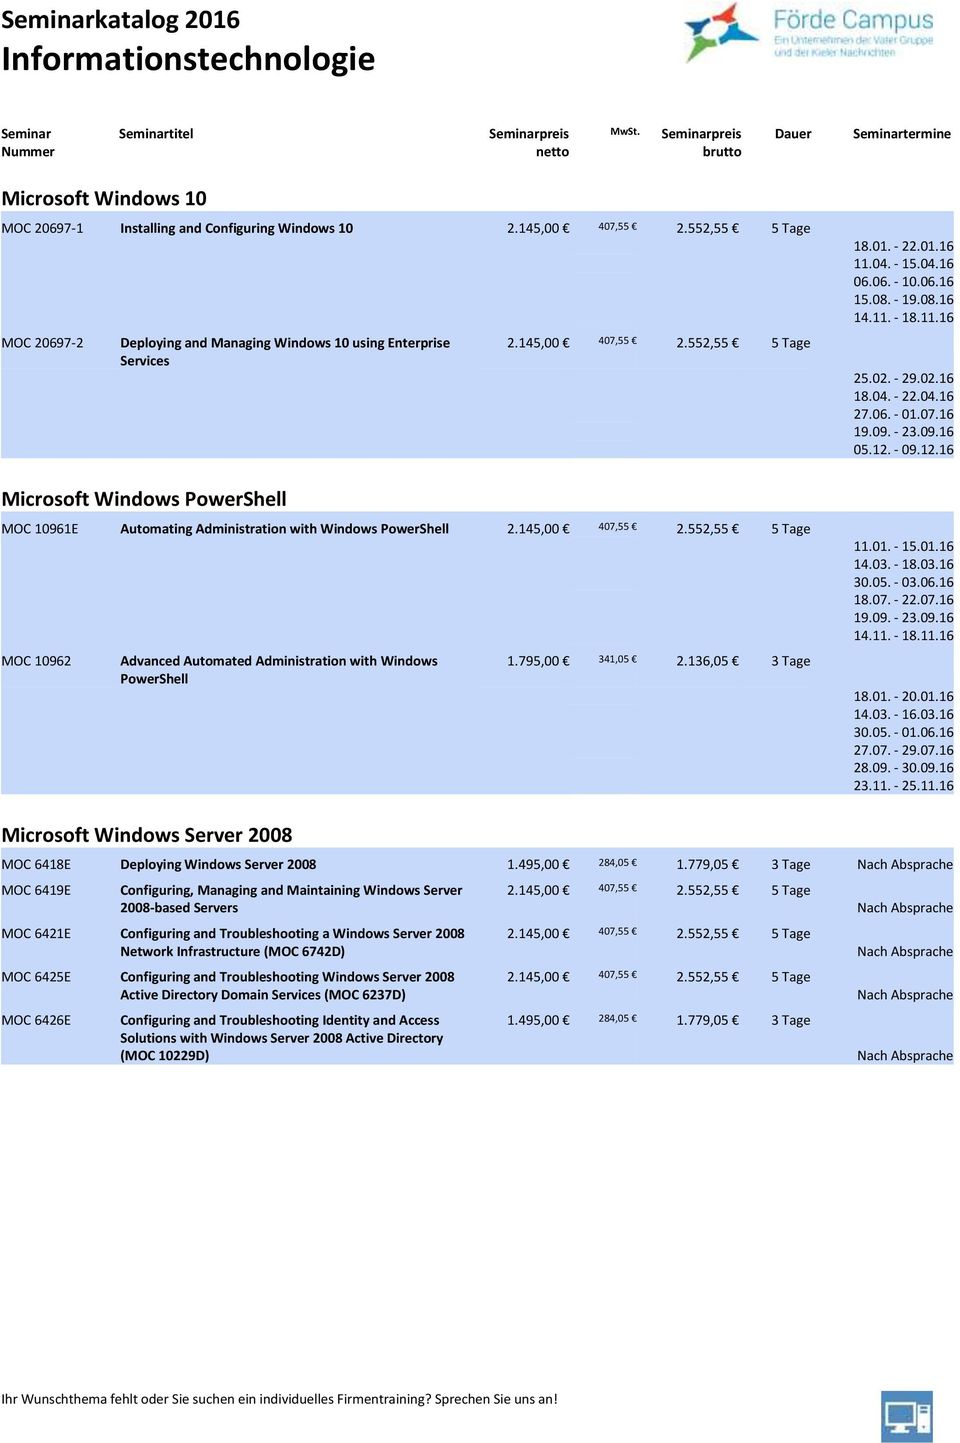 552,55 5 Tage MOC 10961E Automating Administration with Windows PowerShell 2.145,00 407,55 2.552,55 5 Tage MOC 10962 Advanced Automated Administration with Windows PowerShell 1.795,00 341,05 2.